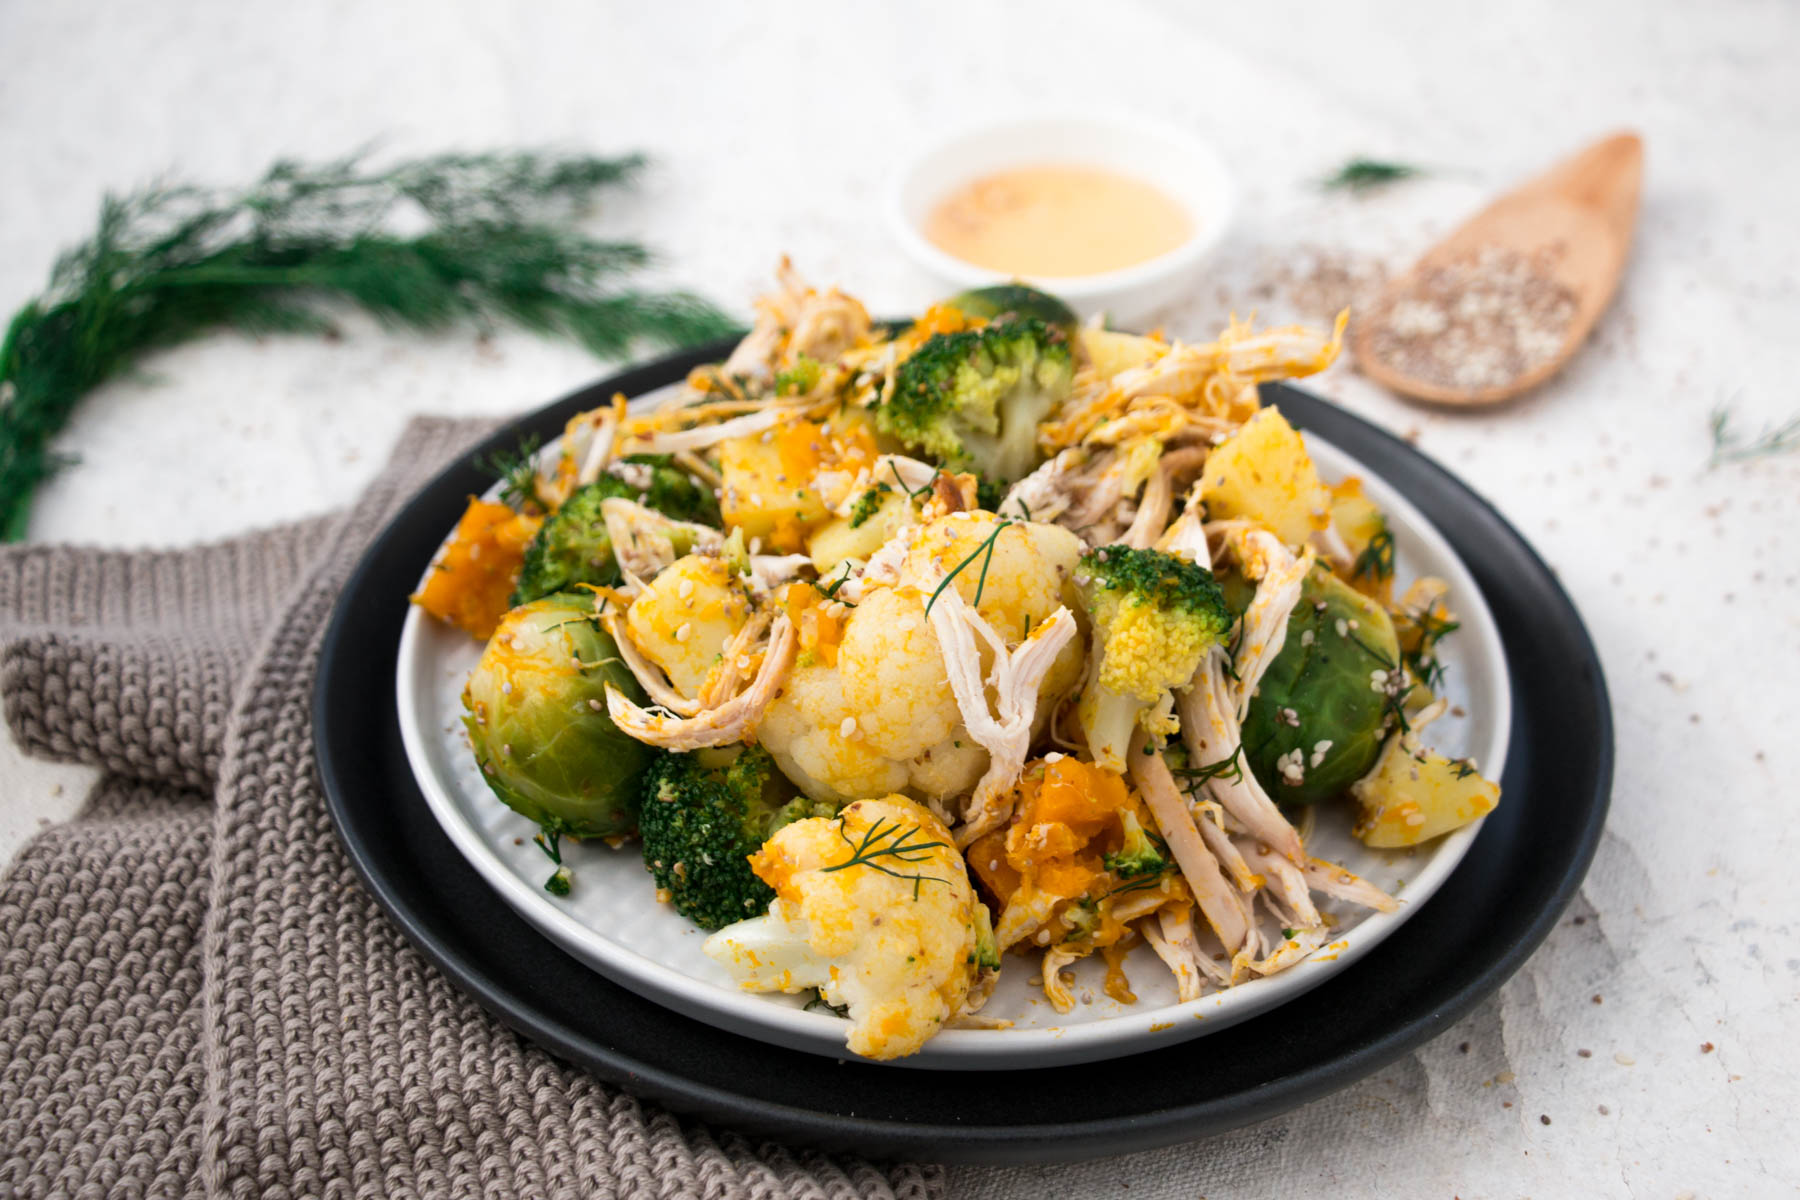 Winter Warming Chicken and Nutty Seasonal Vegetables Brussels sprouts, broccoli, potato, cauliflower, pumpkin, nuts